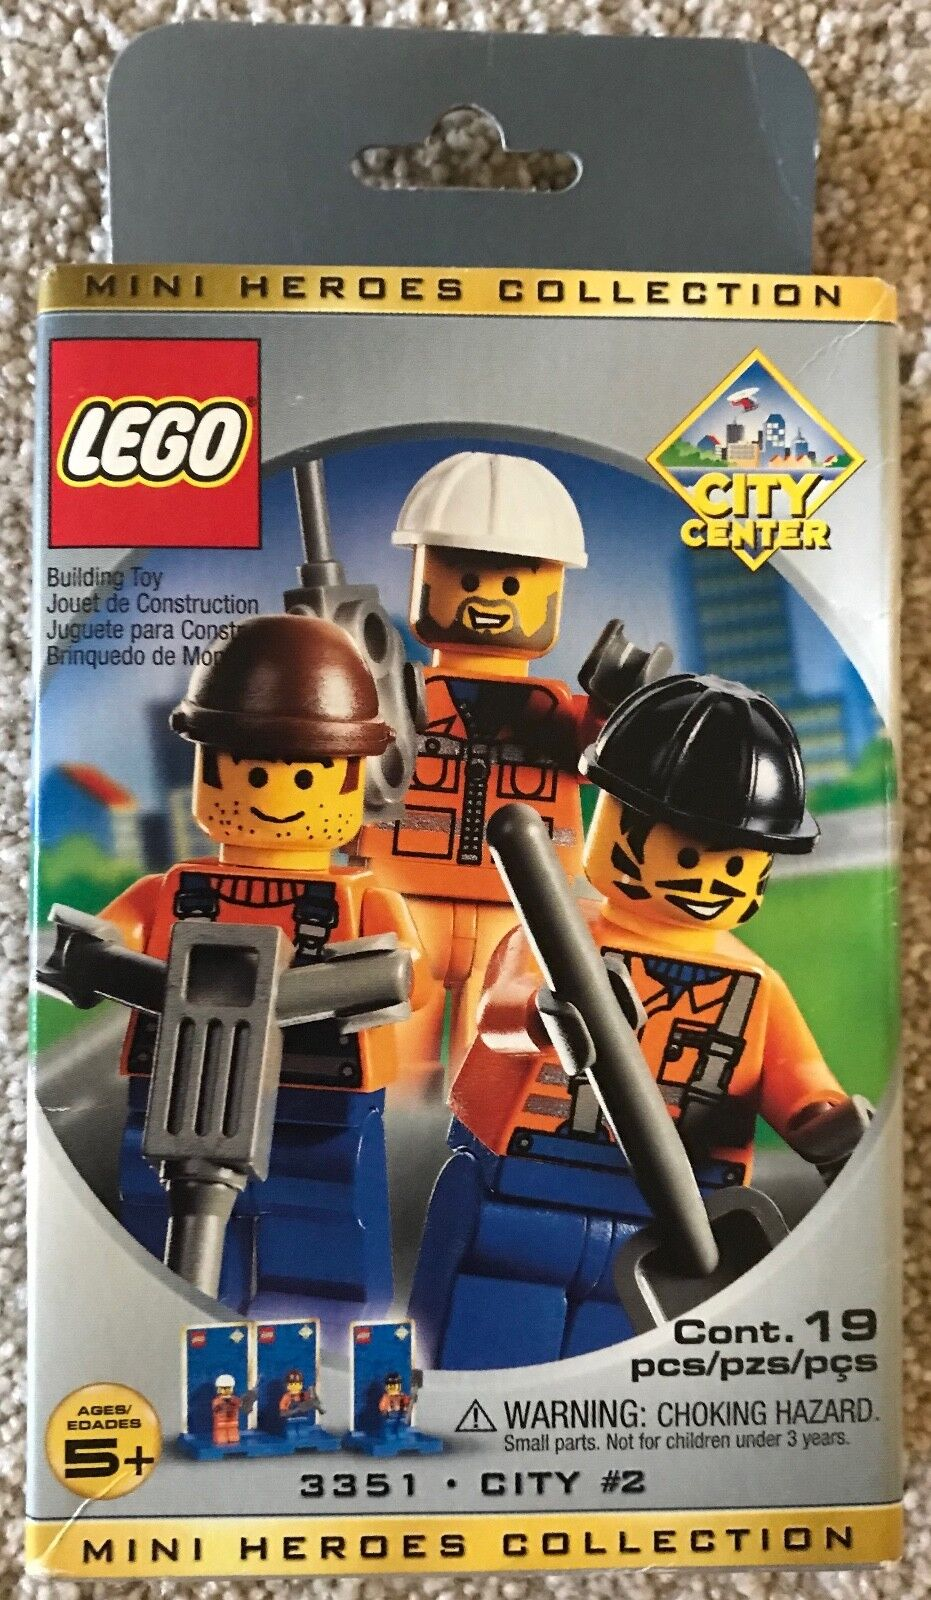 LEGO CITY CENTER Mini Heroes Collection (3351) NEW, SEALED, RETIRED RETIRED RETIRED 250001